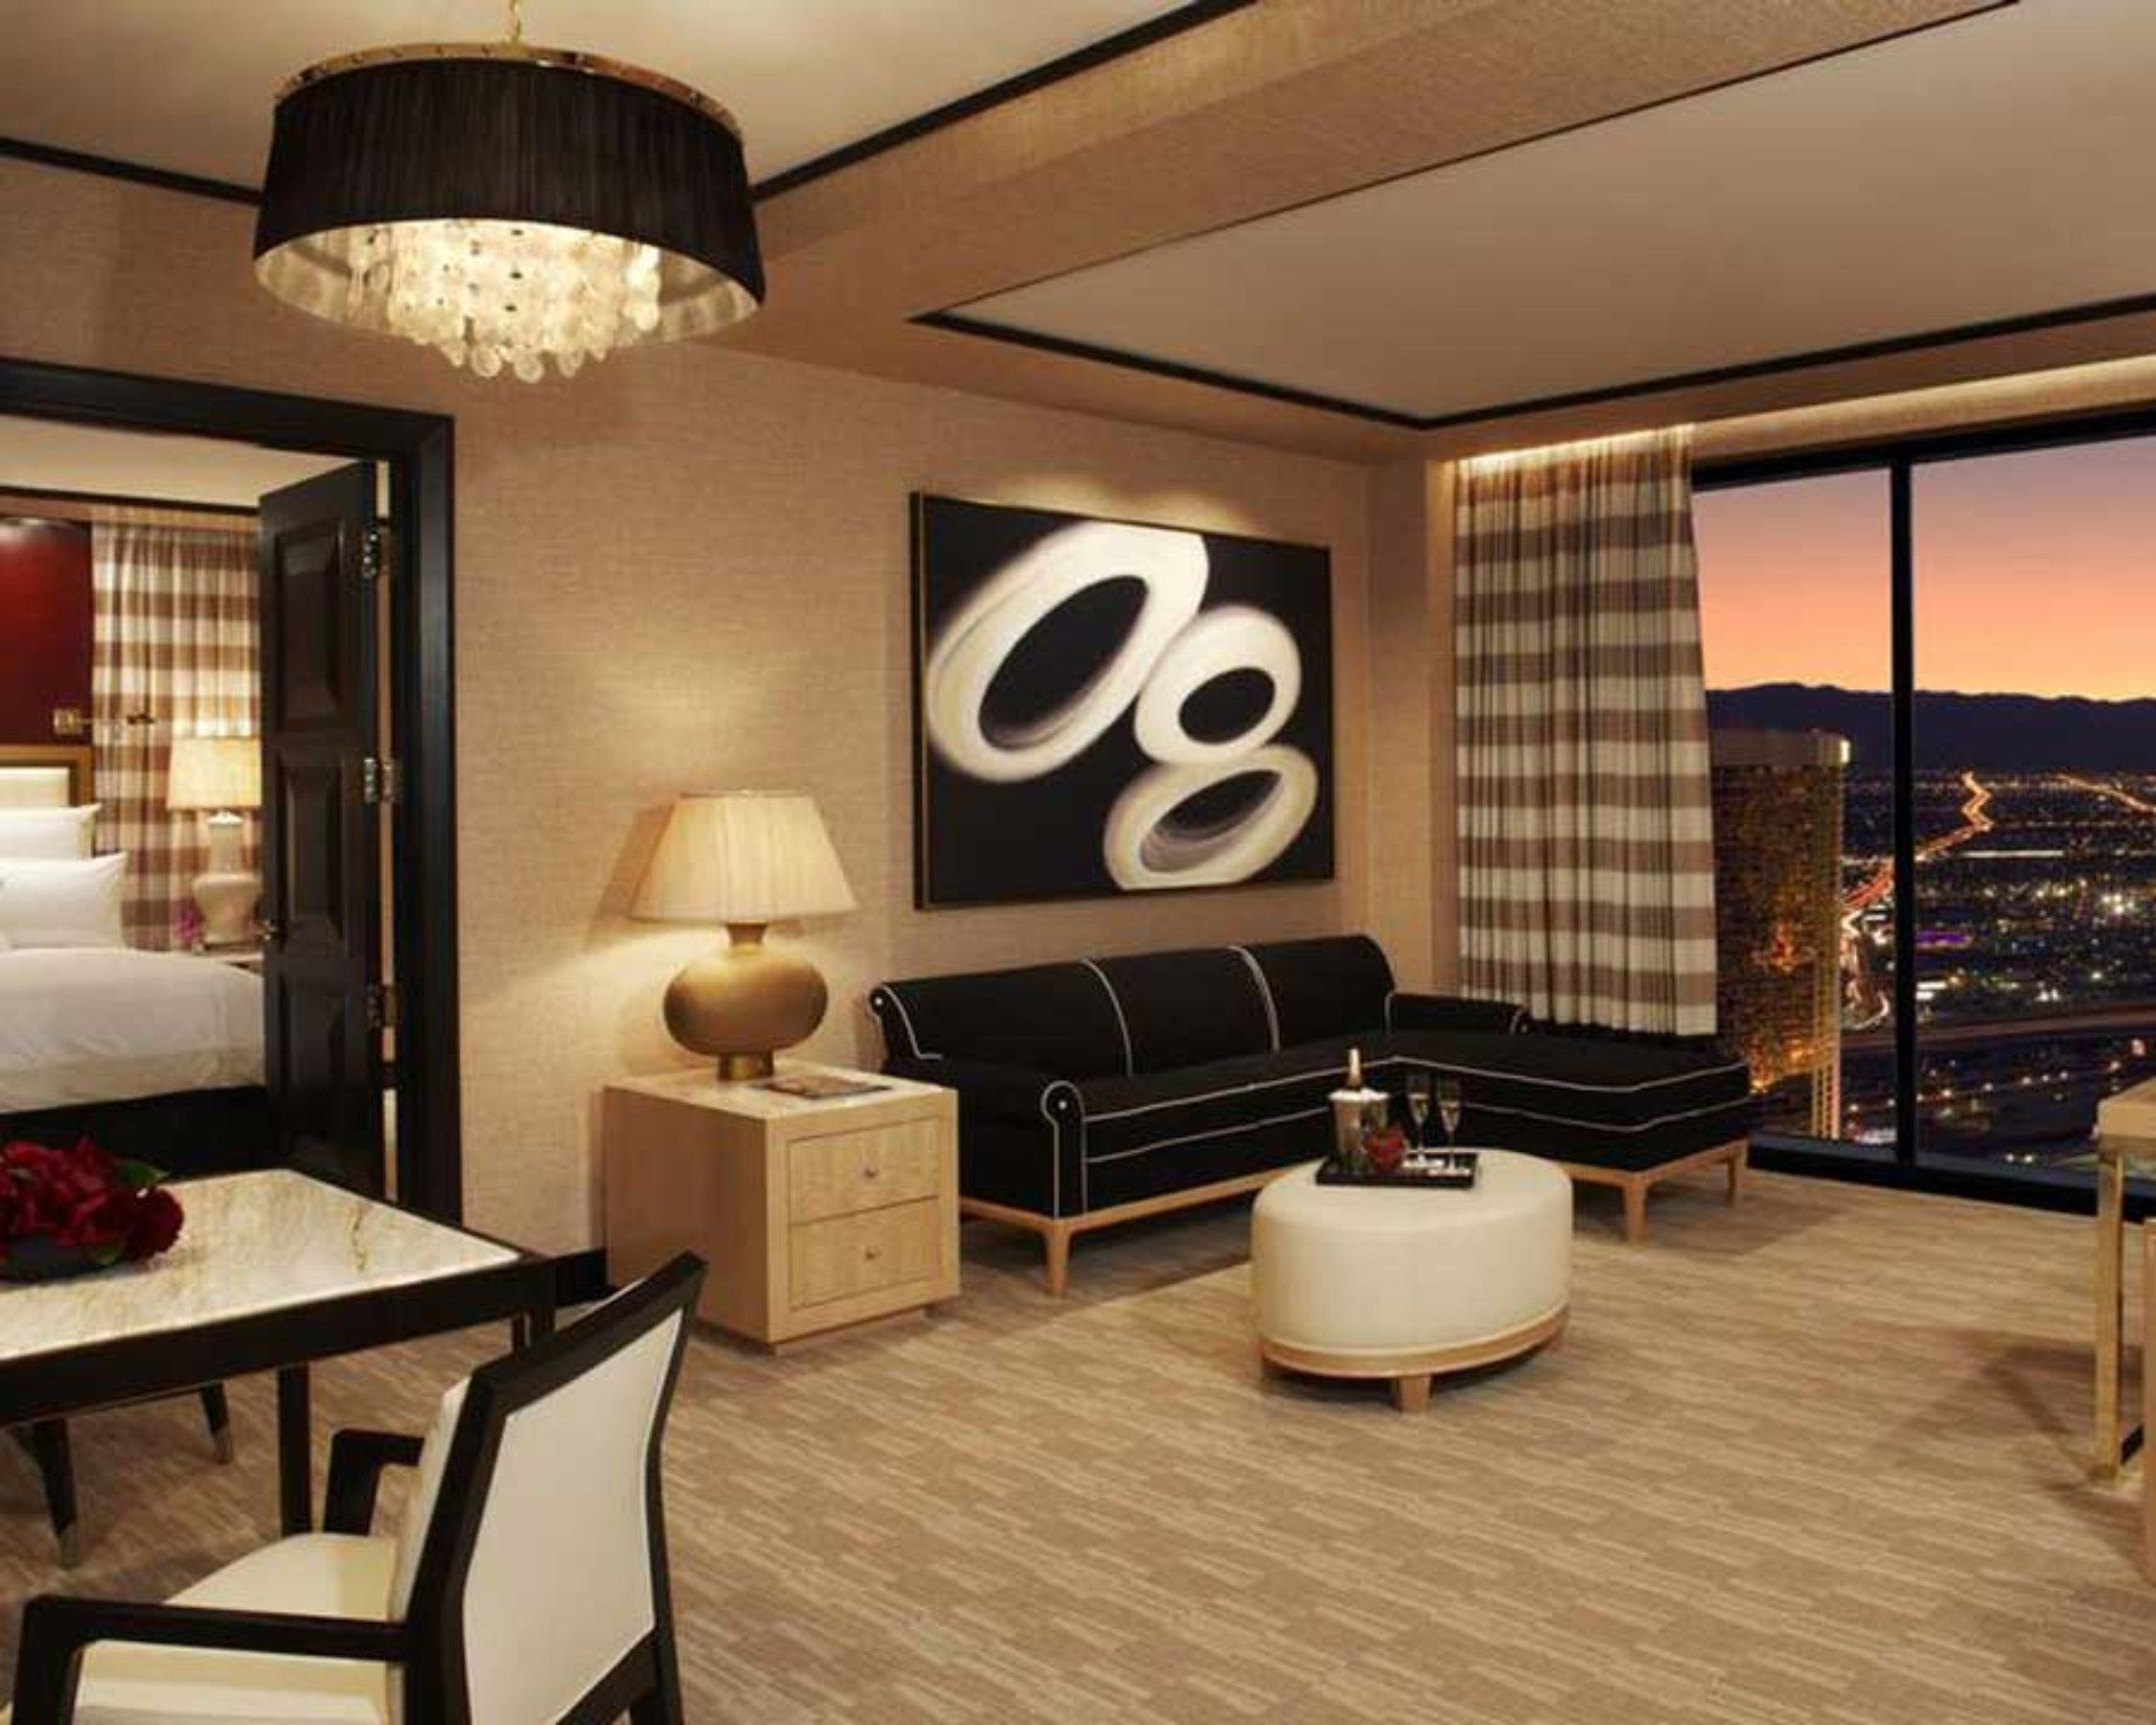 Luxury Interior Design Ideas For Small Apartments With Modern Excerpt  Decorating Apartment_interior Design  Ideas For Small Flats_interior Design_how Much Do ...